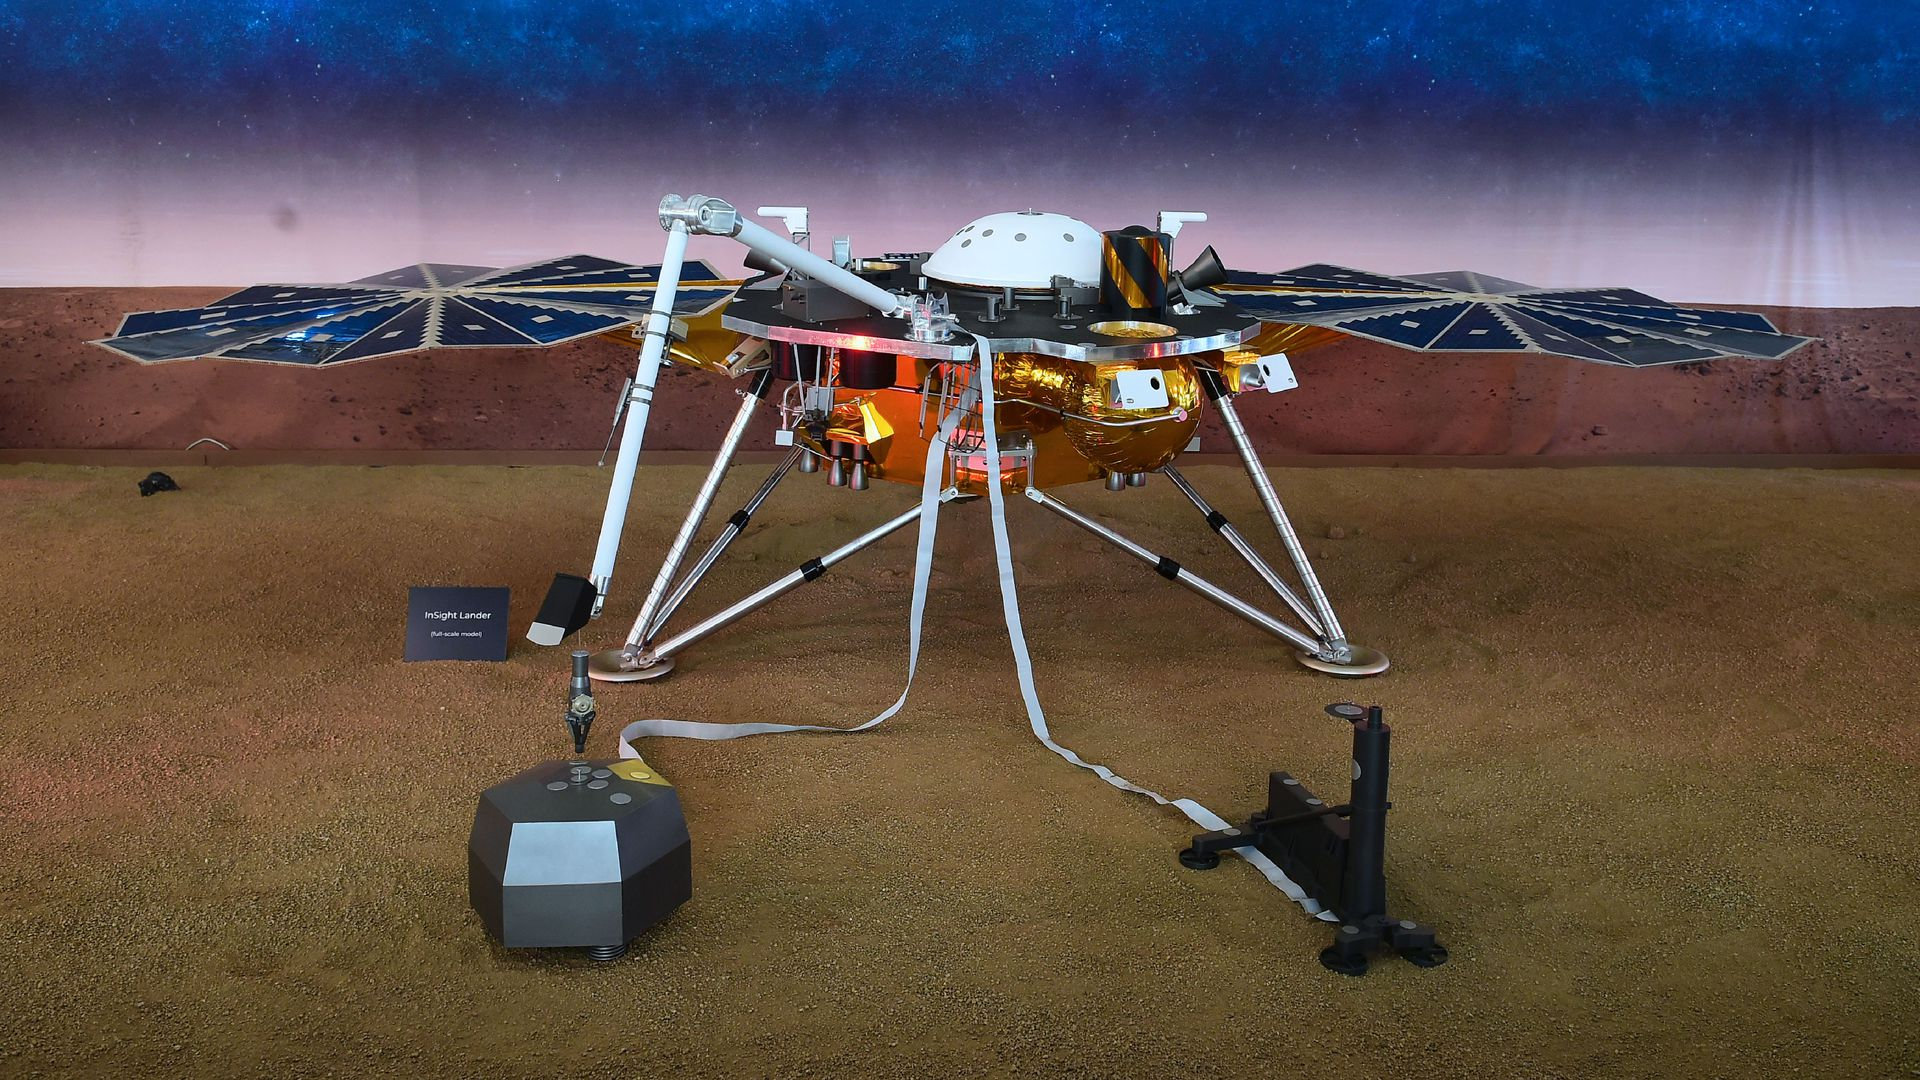 A replica of the InSight Mars Lander is on display at the NASA Jet Propulsion Laboratory (JPL) in Pasadena, California